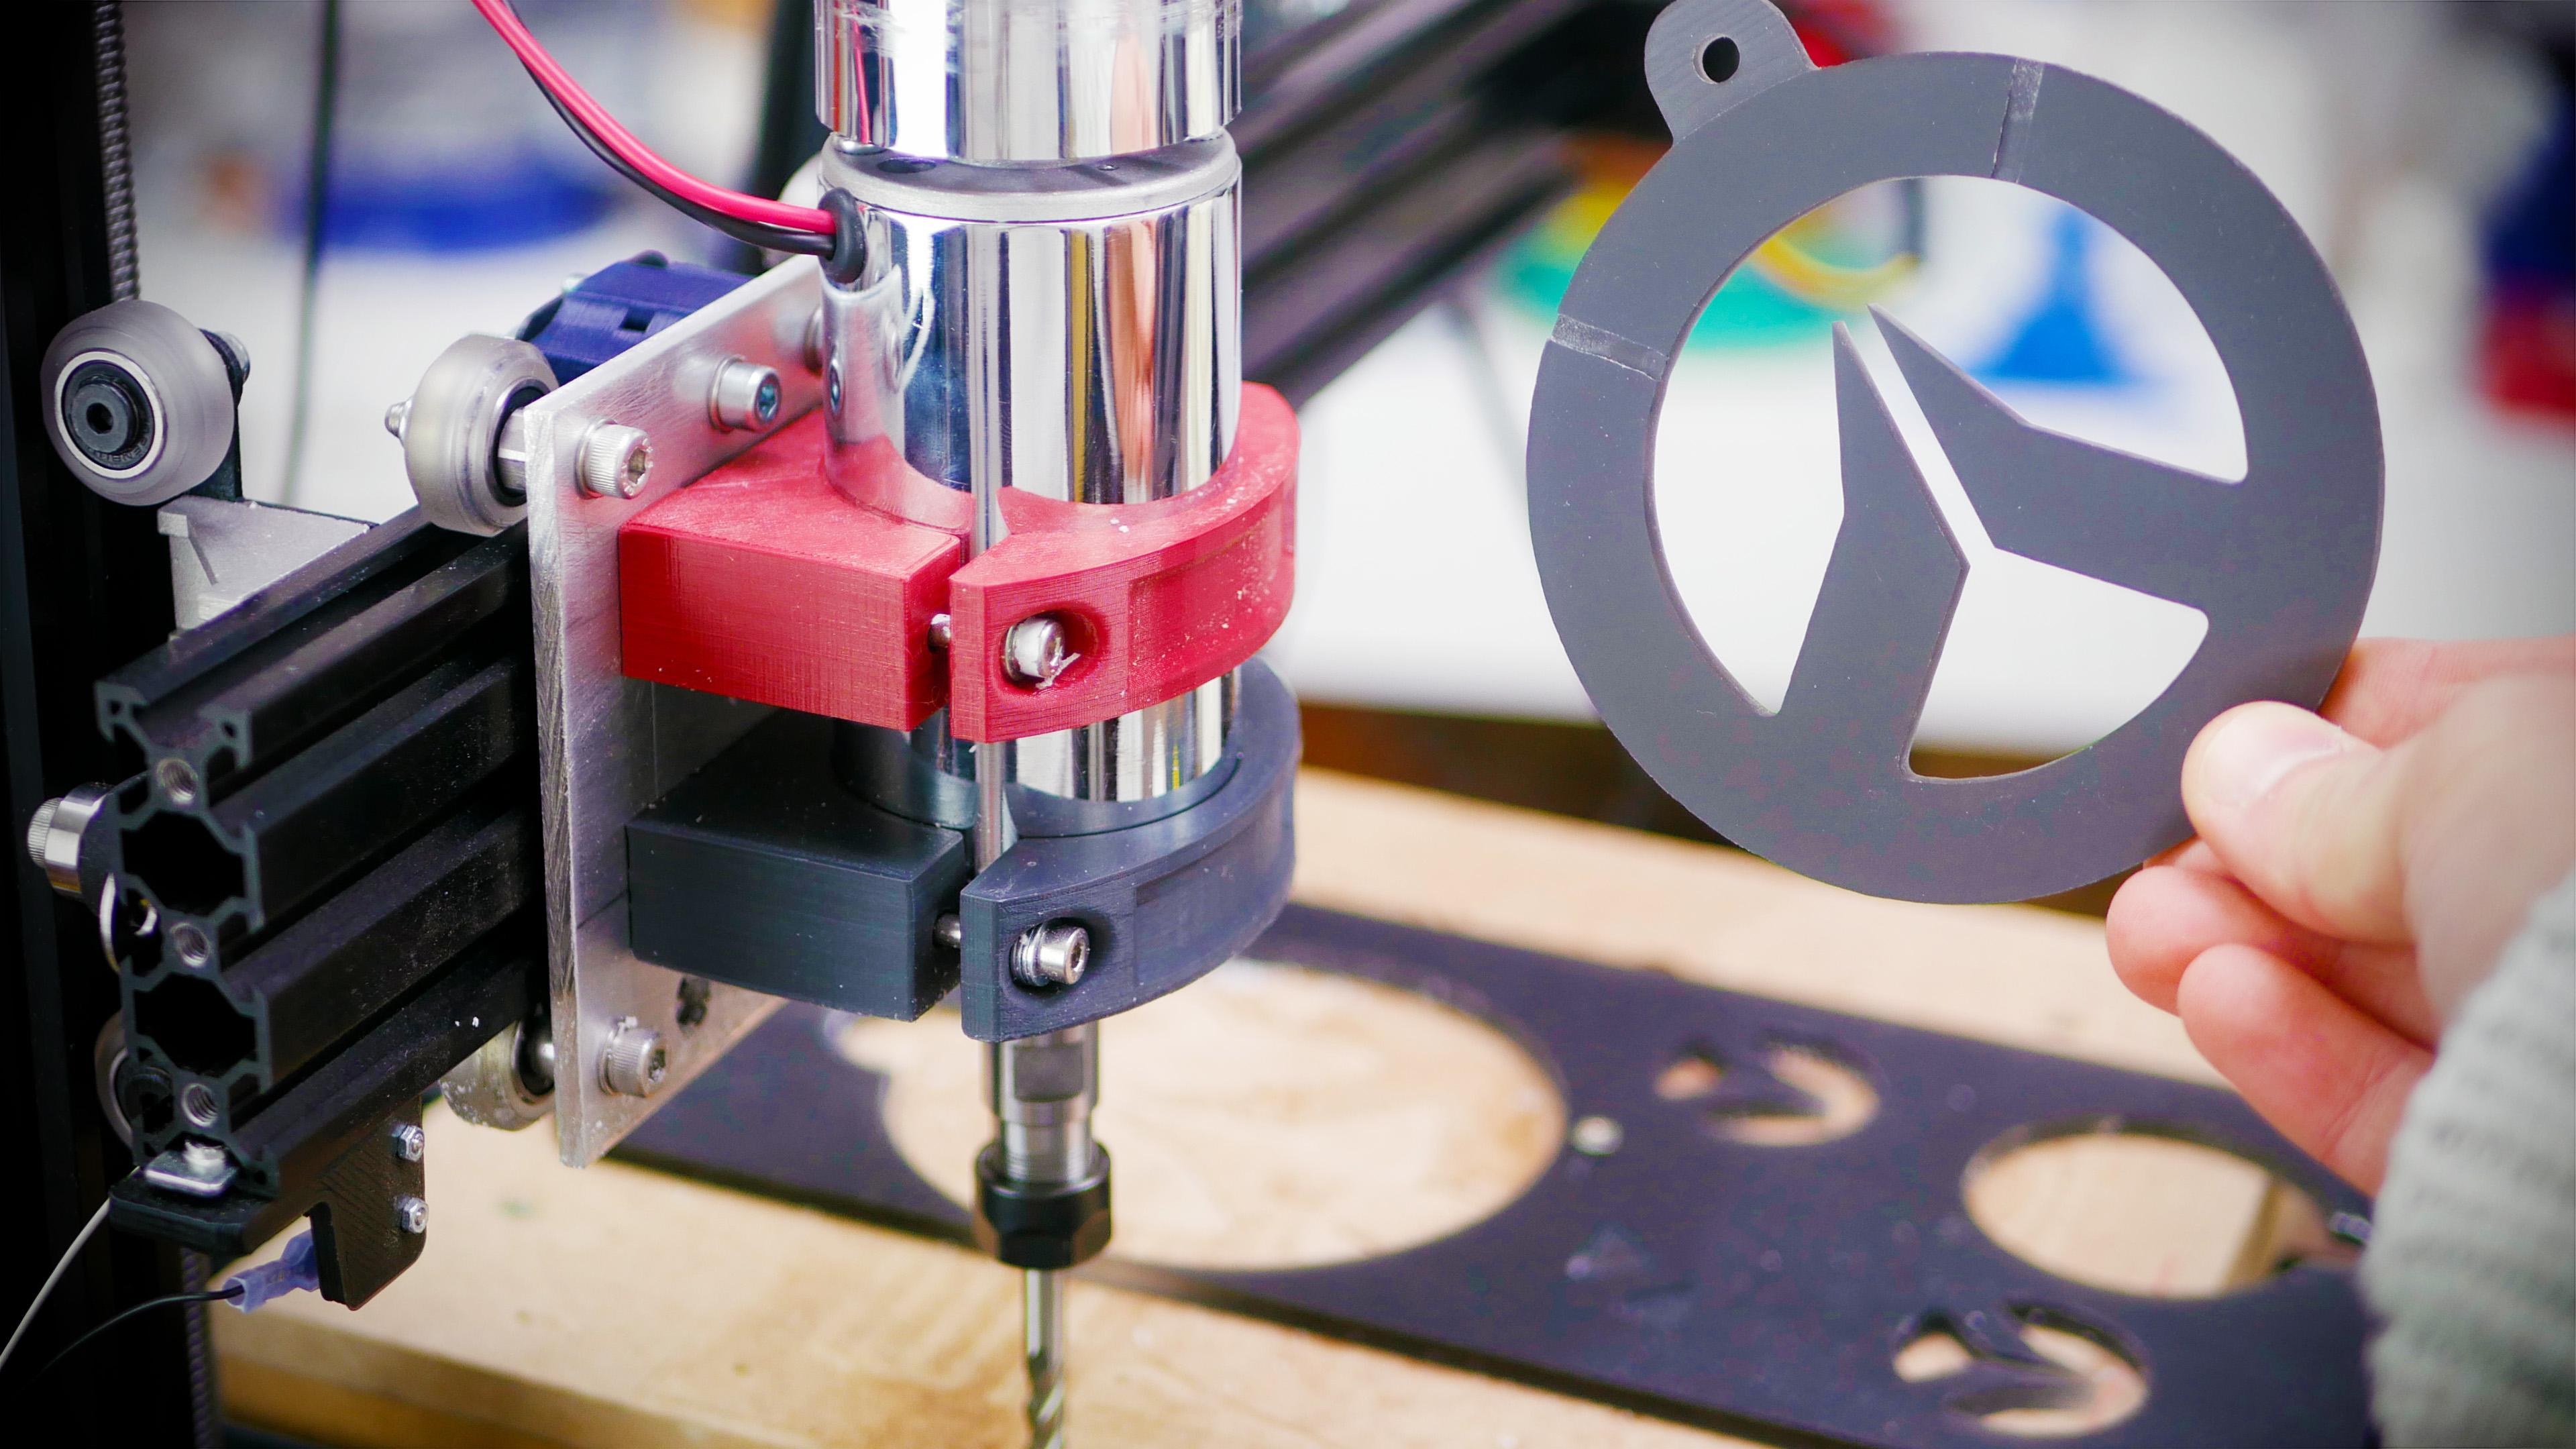 CNC mill built from a 3D Printer! – Tom's 3D printing guides